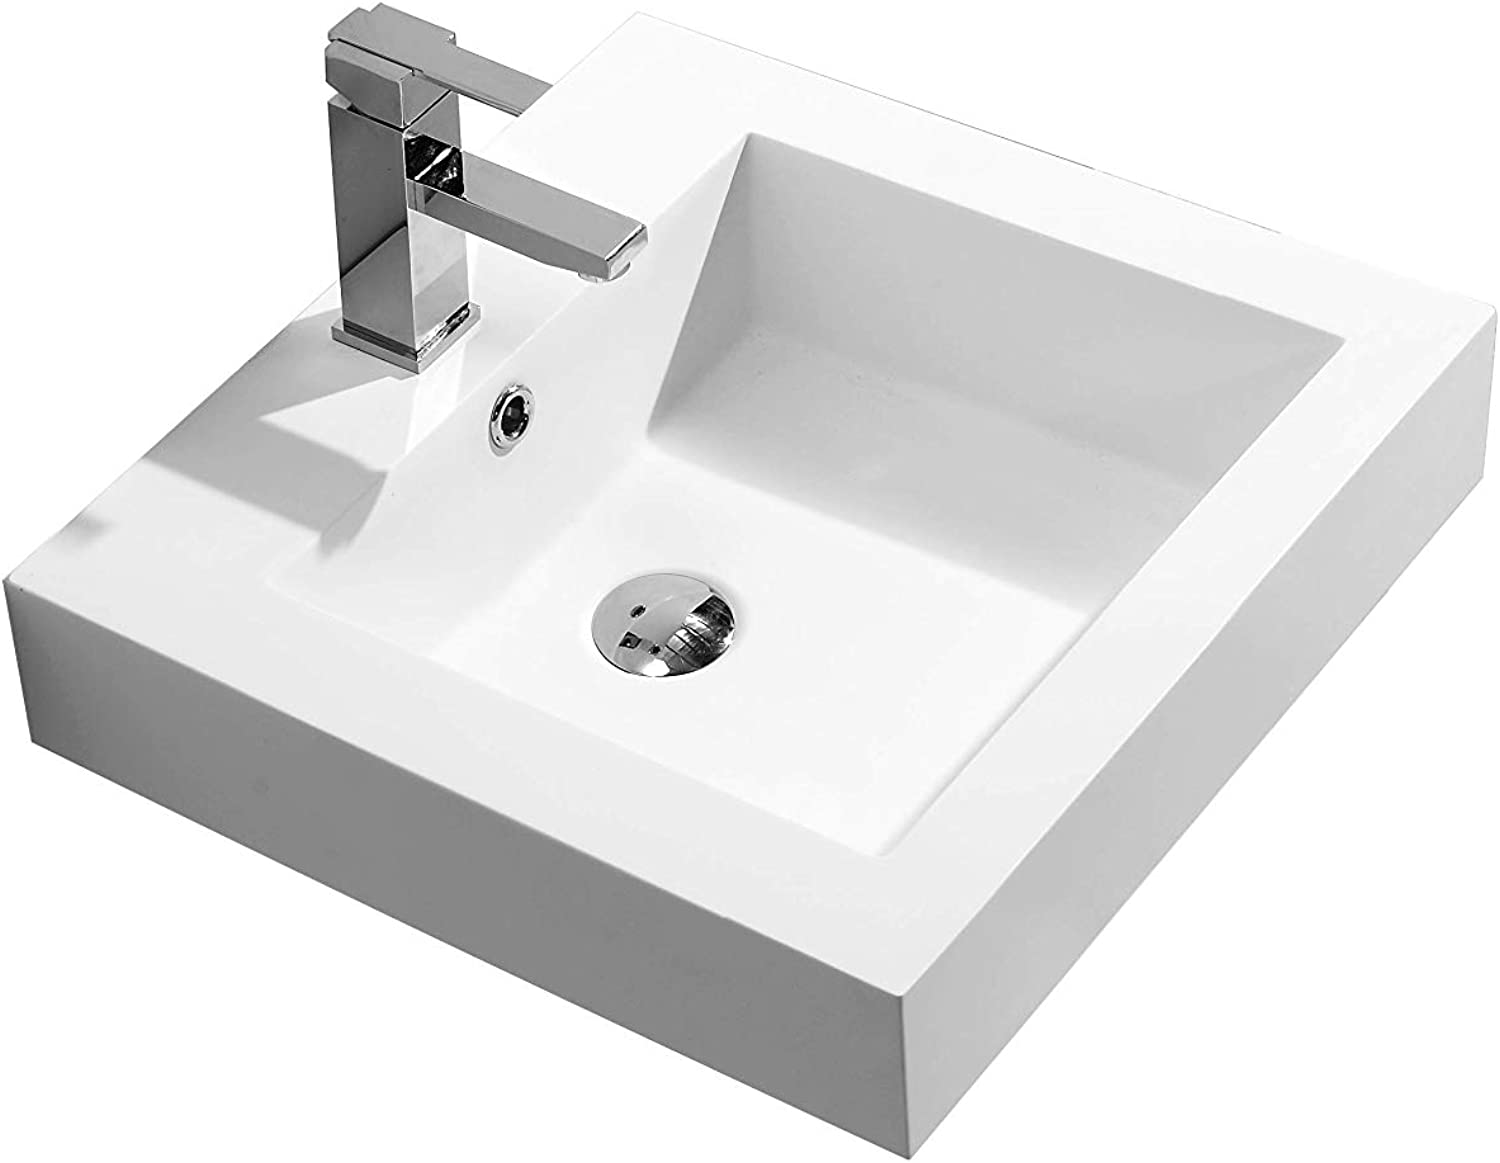 KKR 1011 Wall-Mounted Basin Cast Mineral Stone with Solid Surface Matt